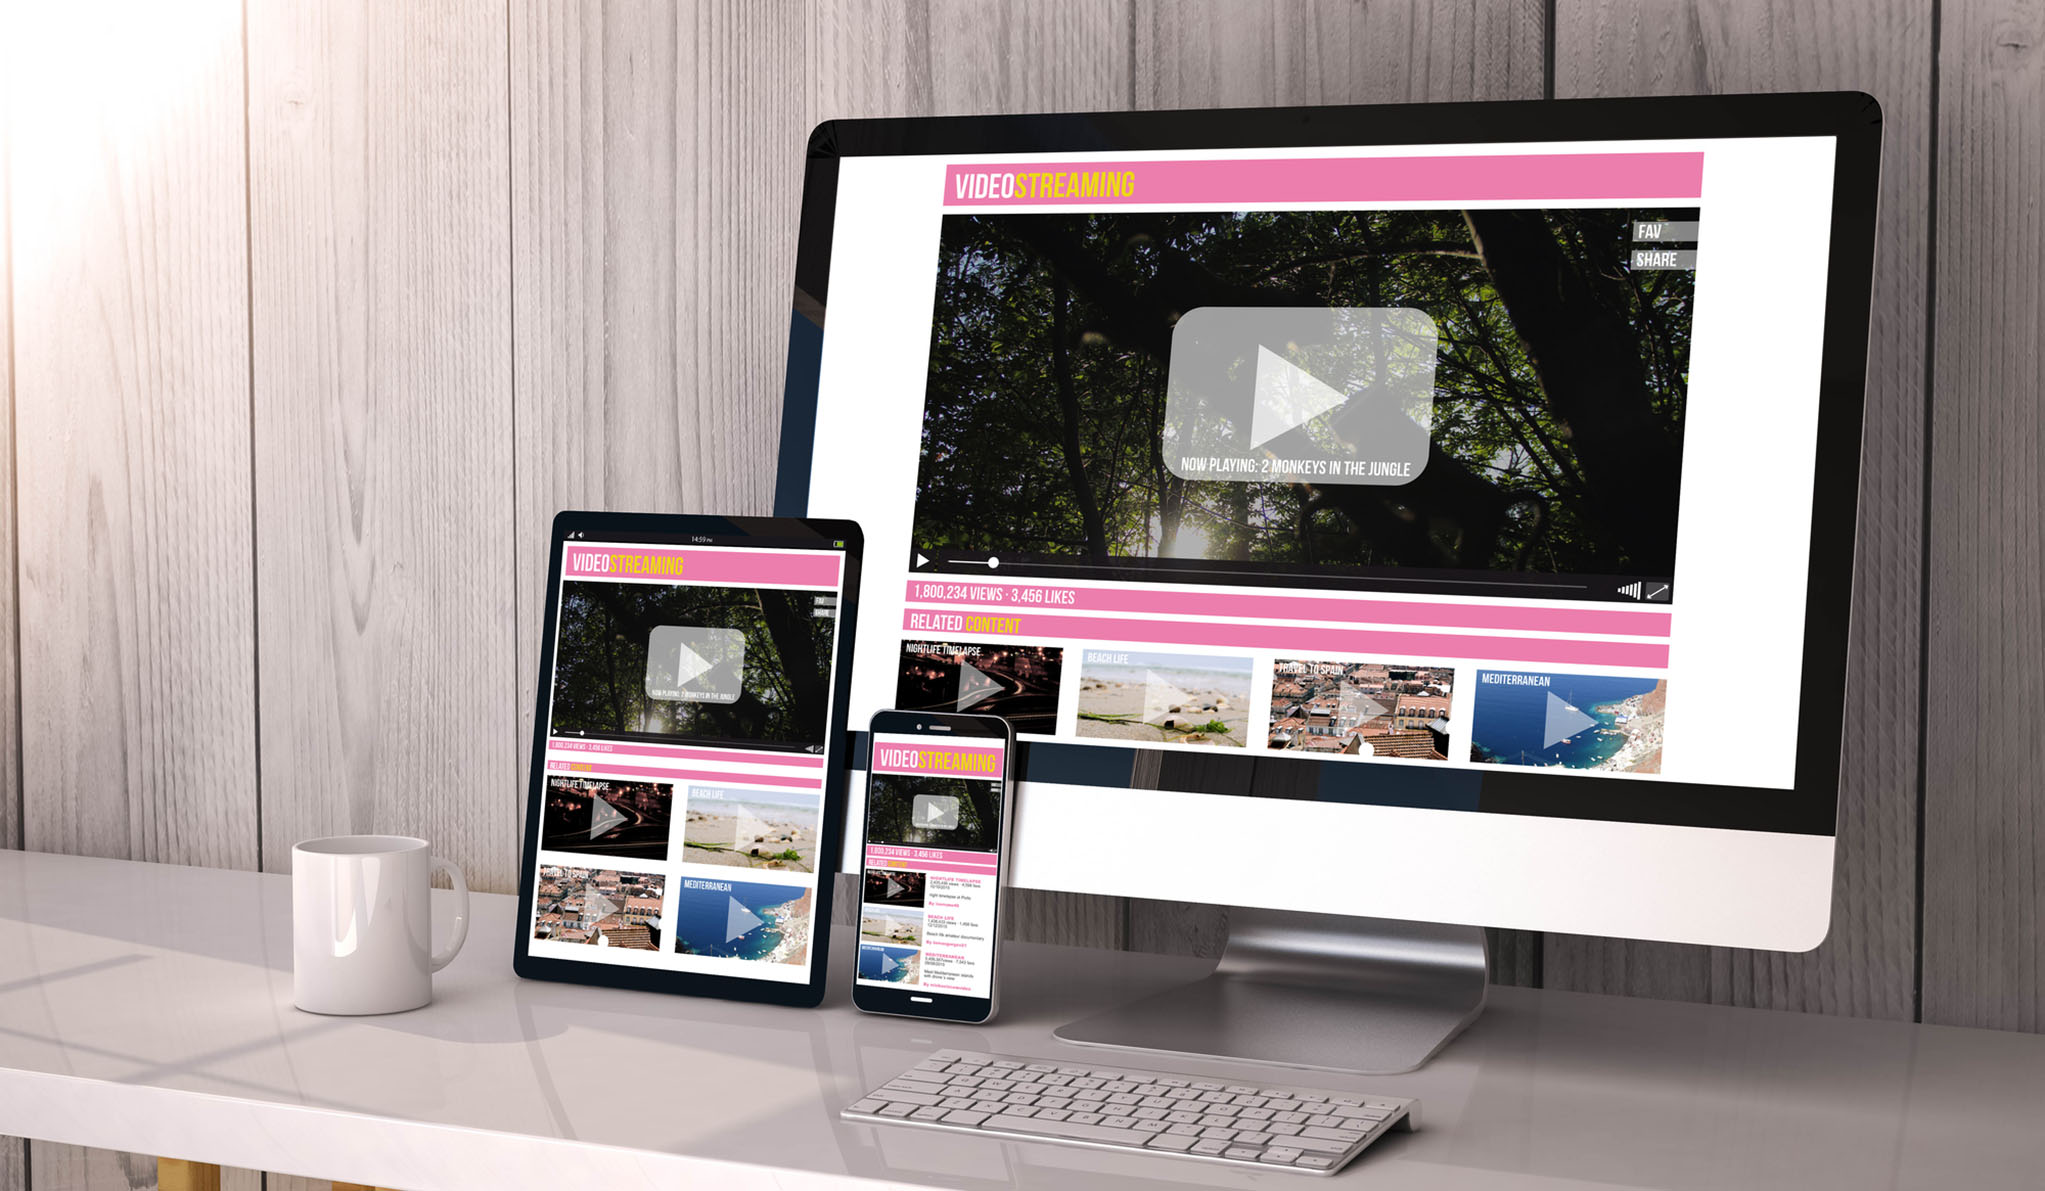 Why the streaming video industry must work together to solve video delivery quality issues